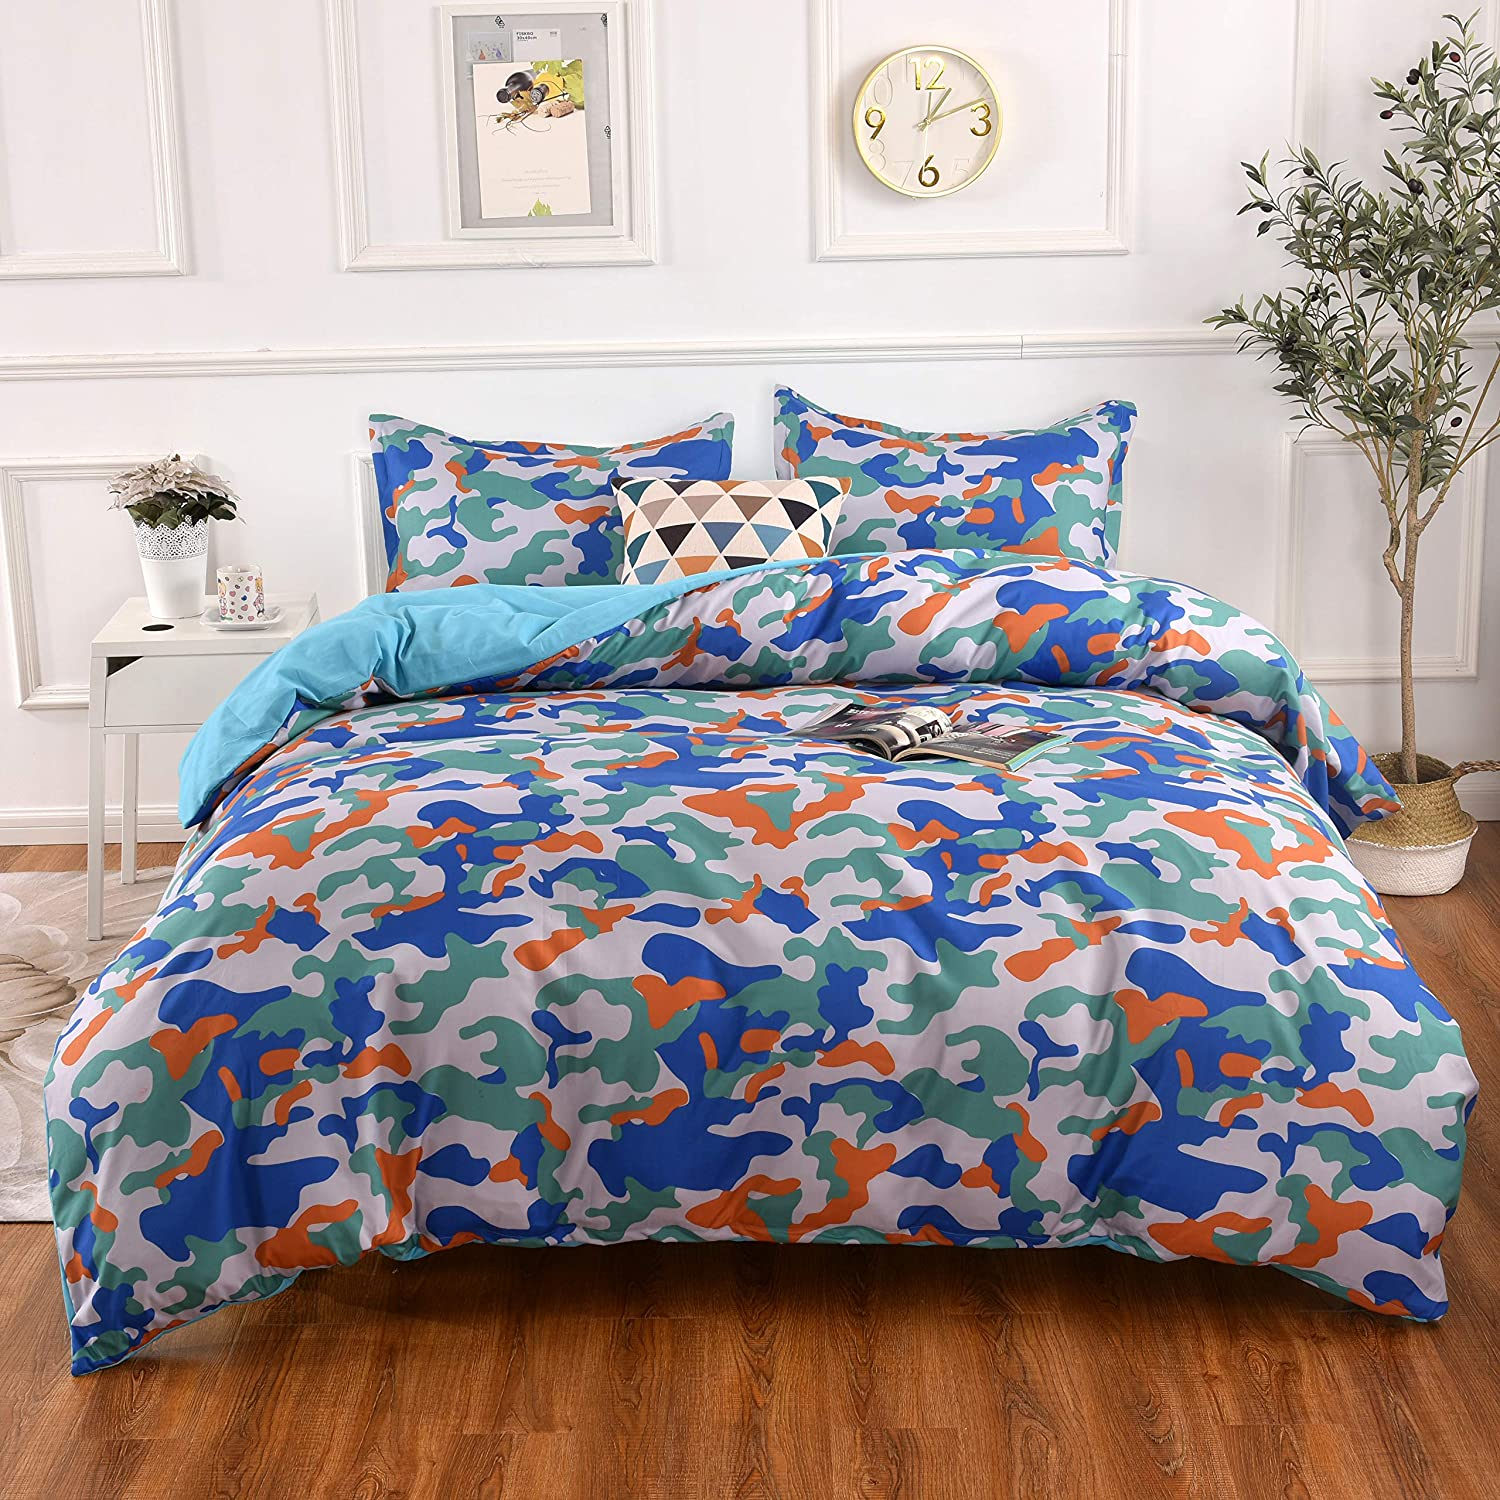 YMY Lightweight Microfiber Bedding Duvet Cover Set,Camouflage Orange Blue Printing Pattern (Queen)